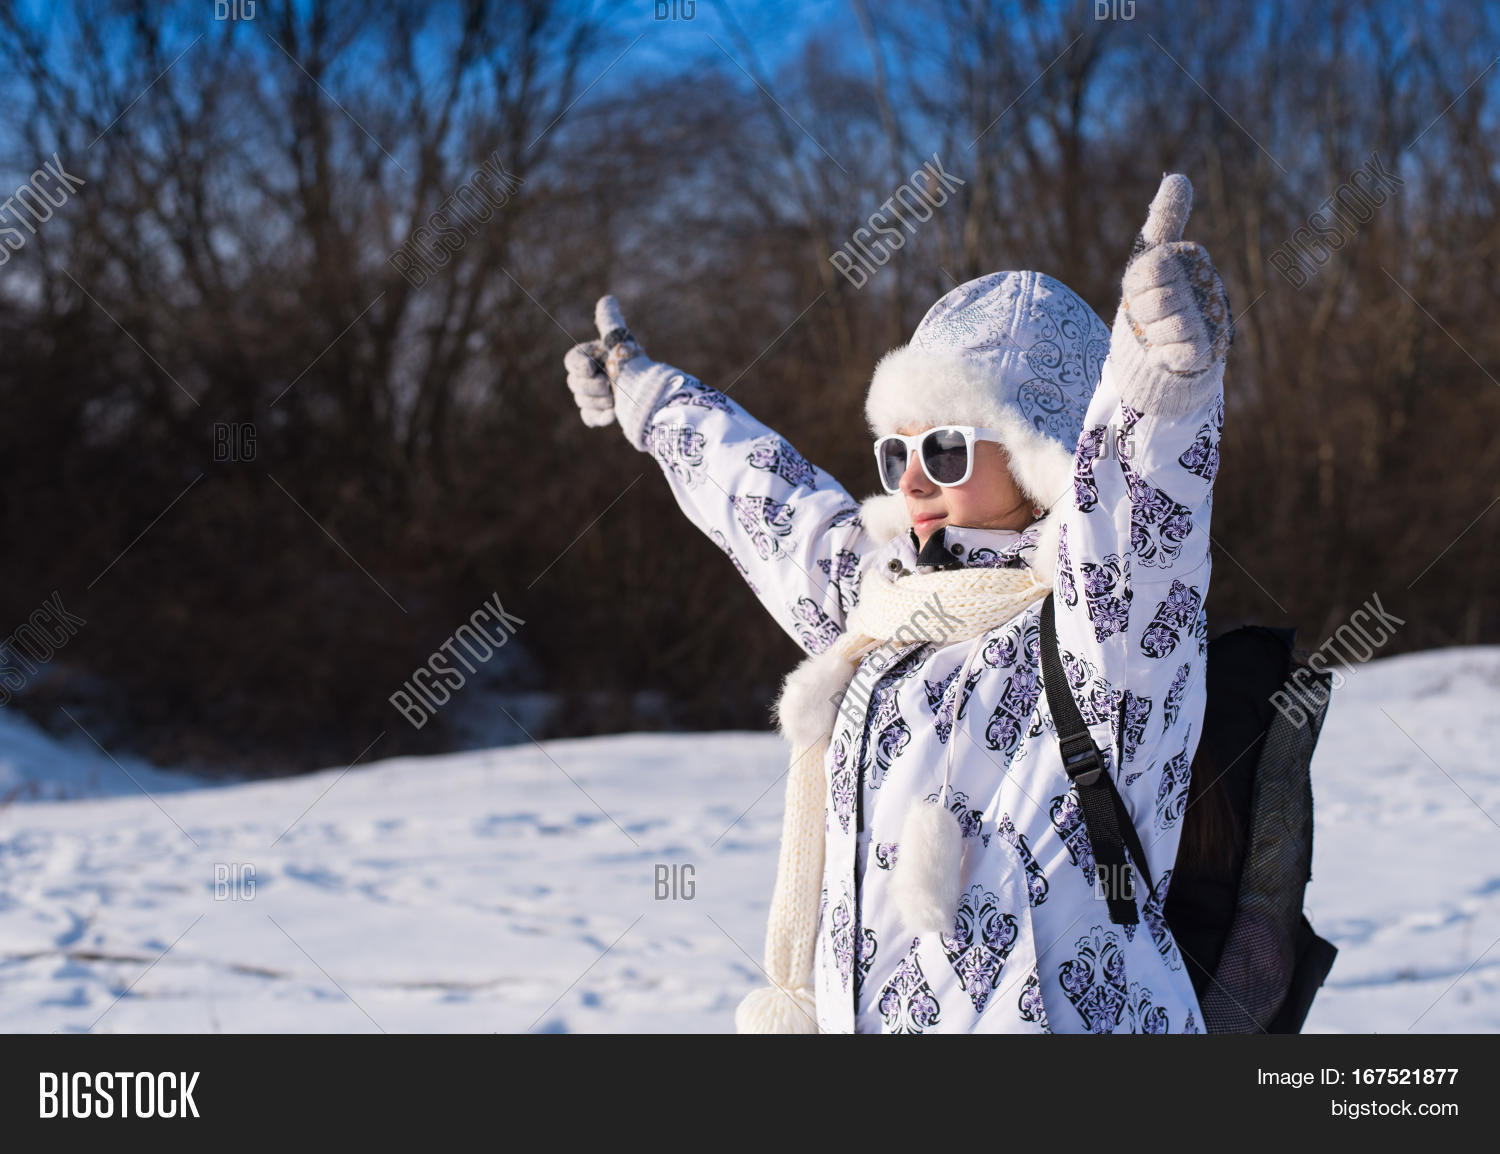 0739ad7b0074 Funny little girl in sunglasses in winter a sunny day. Thumb up sign.  Caucasian